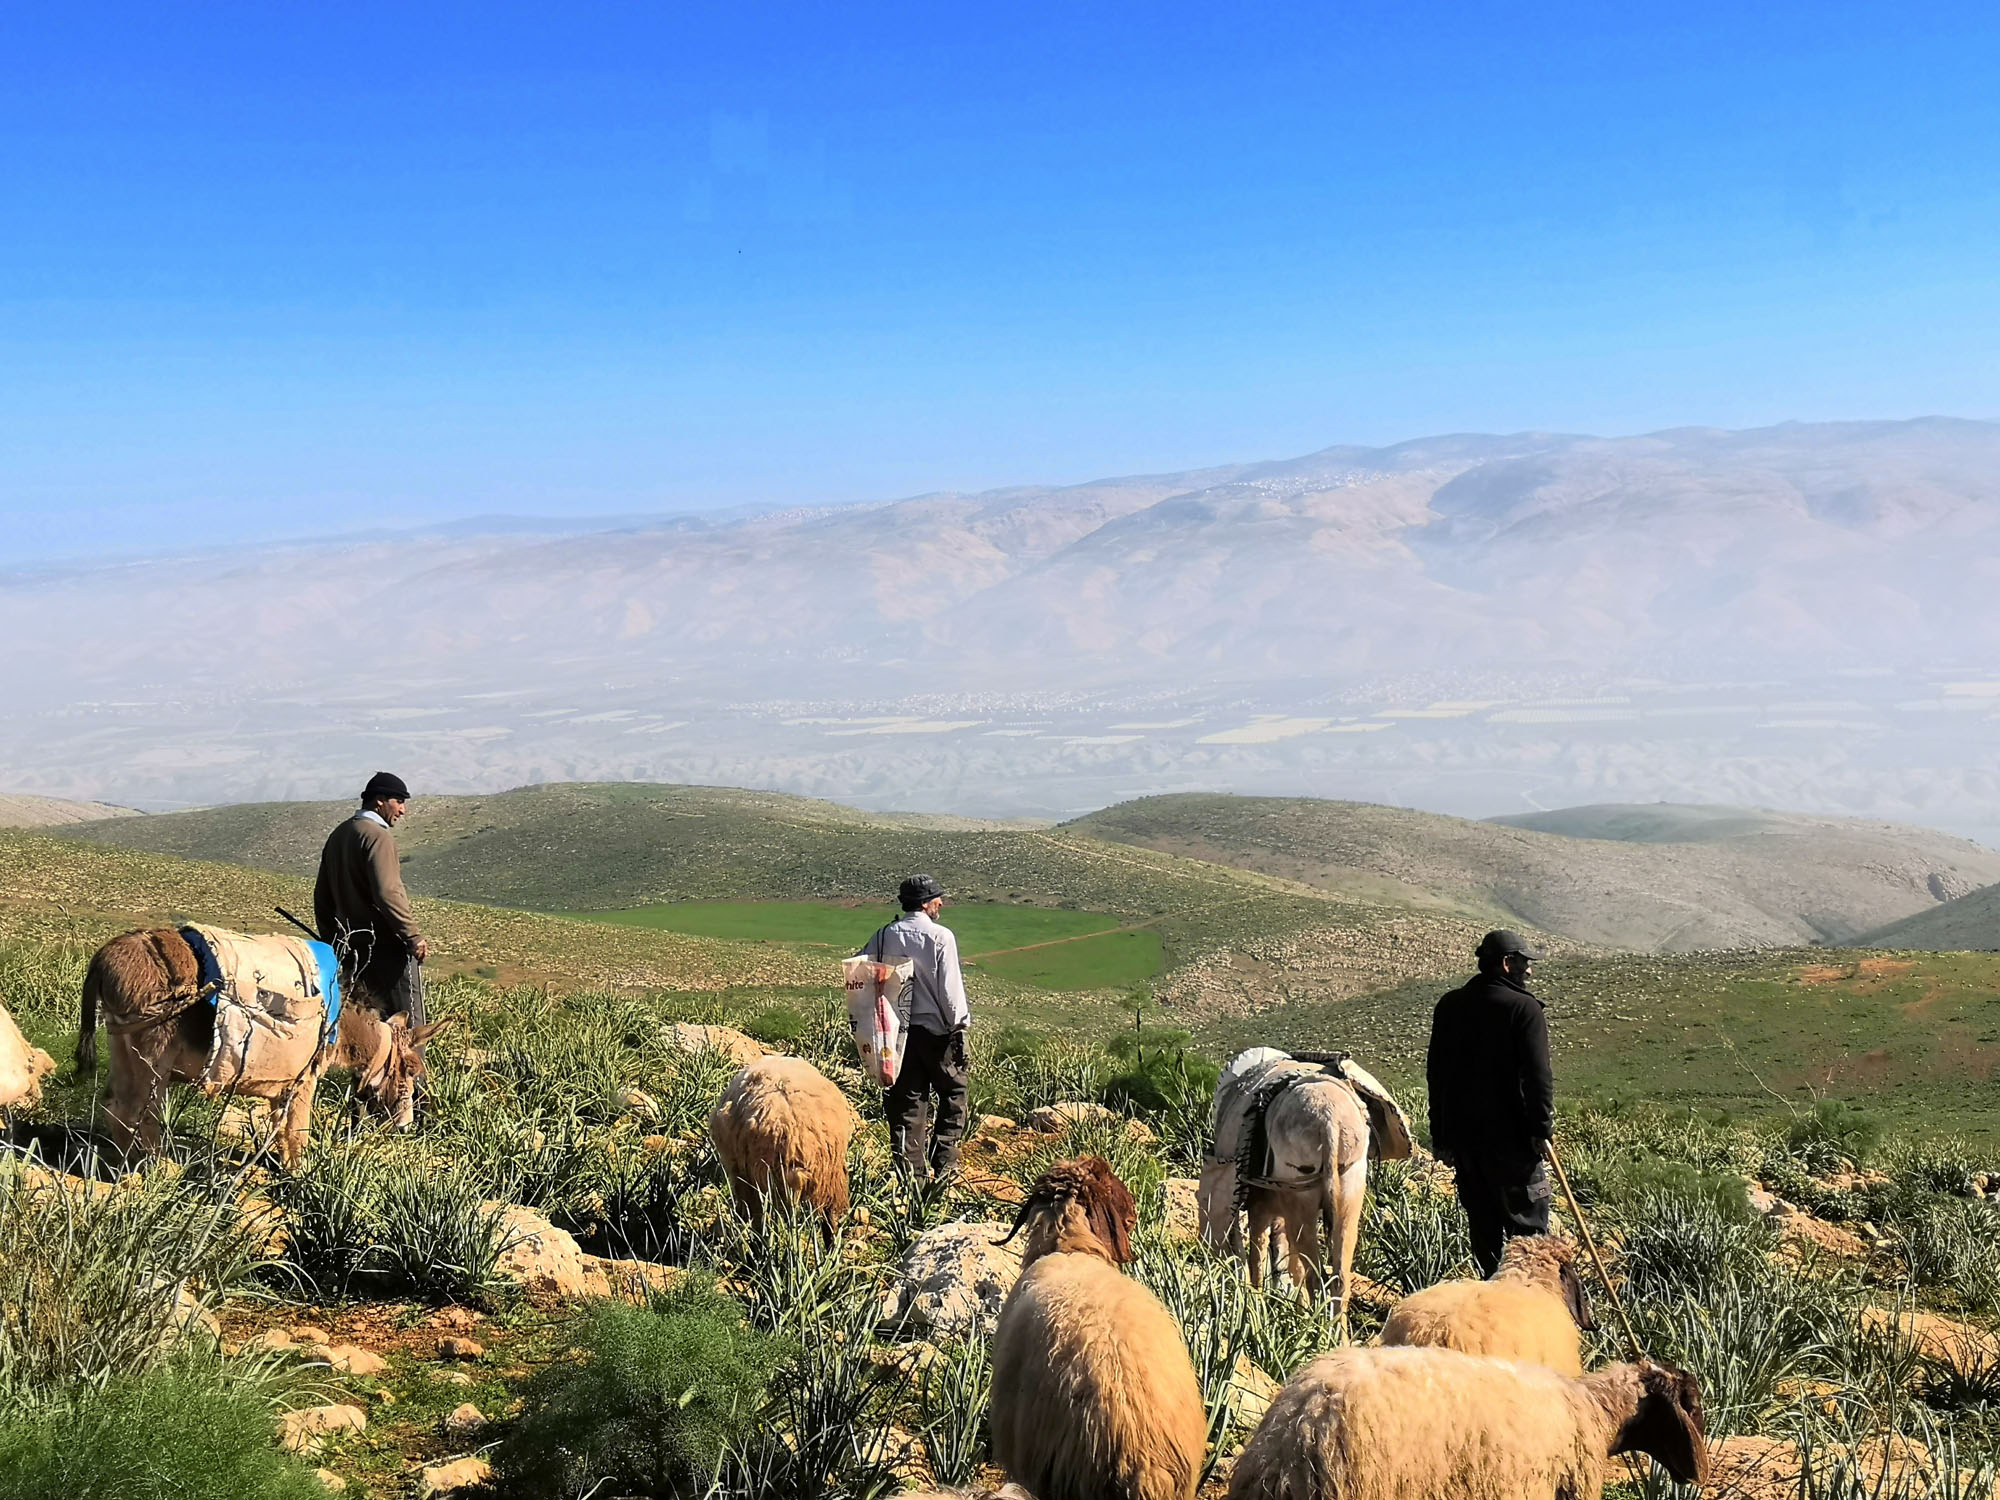 Palestinian shepherds with their sheep on a hillside in the Jordan Valley